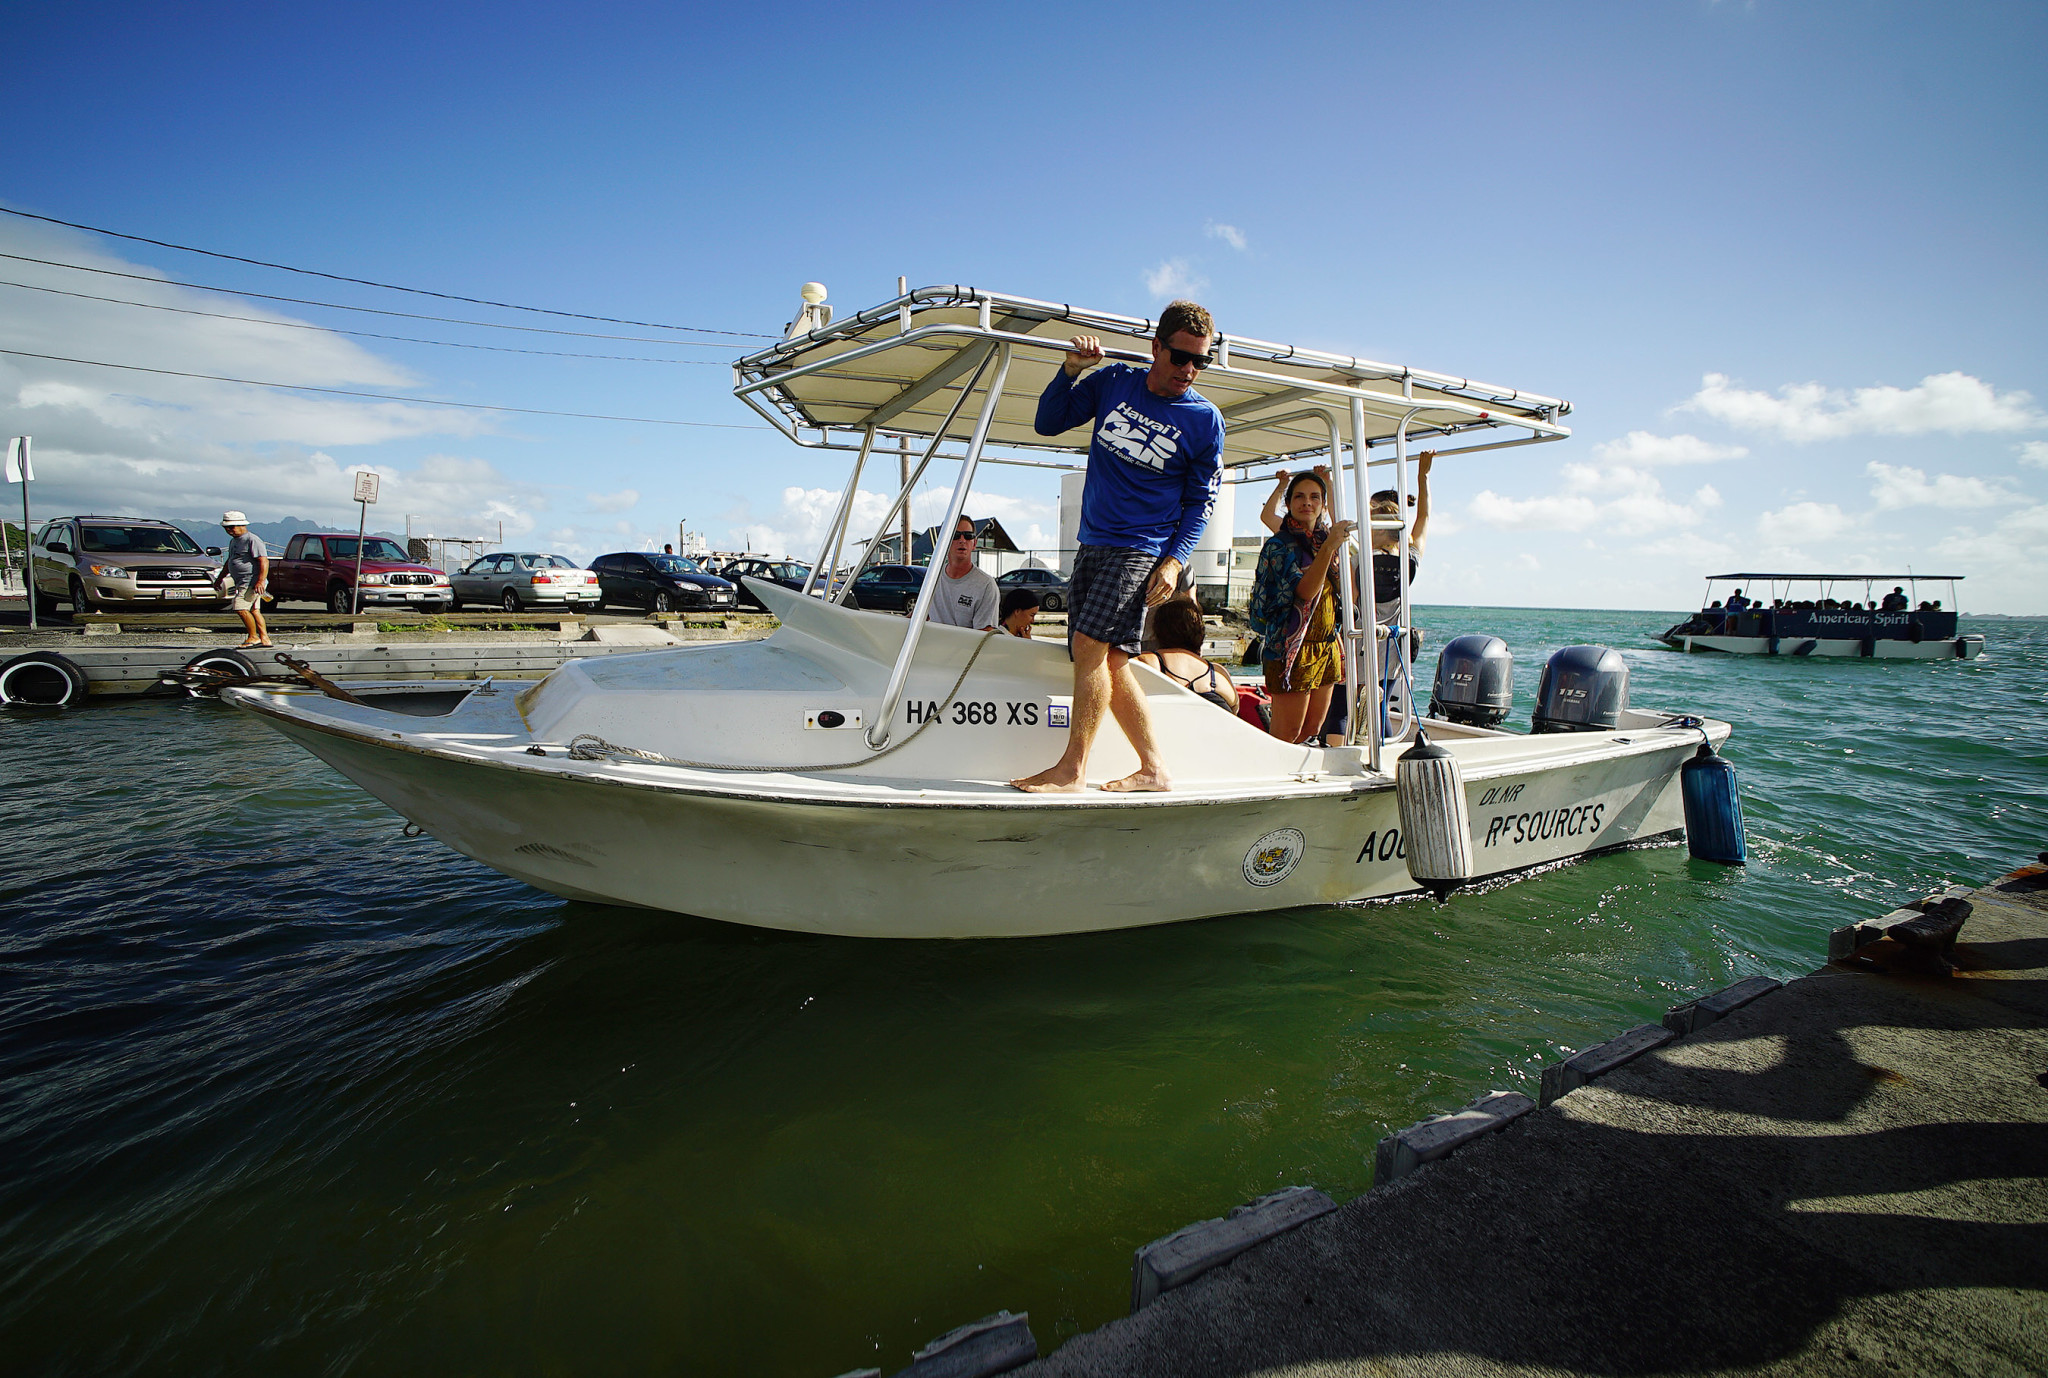 <p>On Thursday, Hawaii Department of Land and Natural Resources officials showcased how they were trying to keep the state's coral alive despite the ongoing pressures faced by worsening bleaching events. The event was part of the International Union for Conservation of Nature's World Conservation Congress, which is the largest environmental gathering in the world.</p>